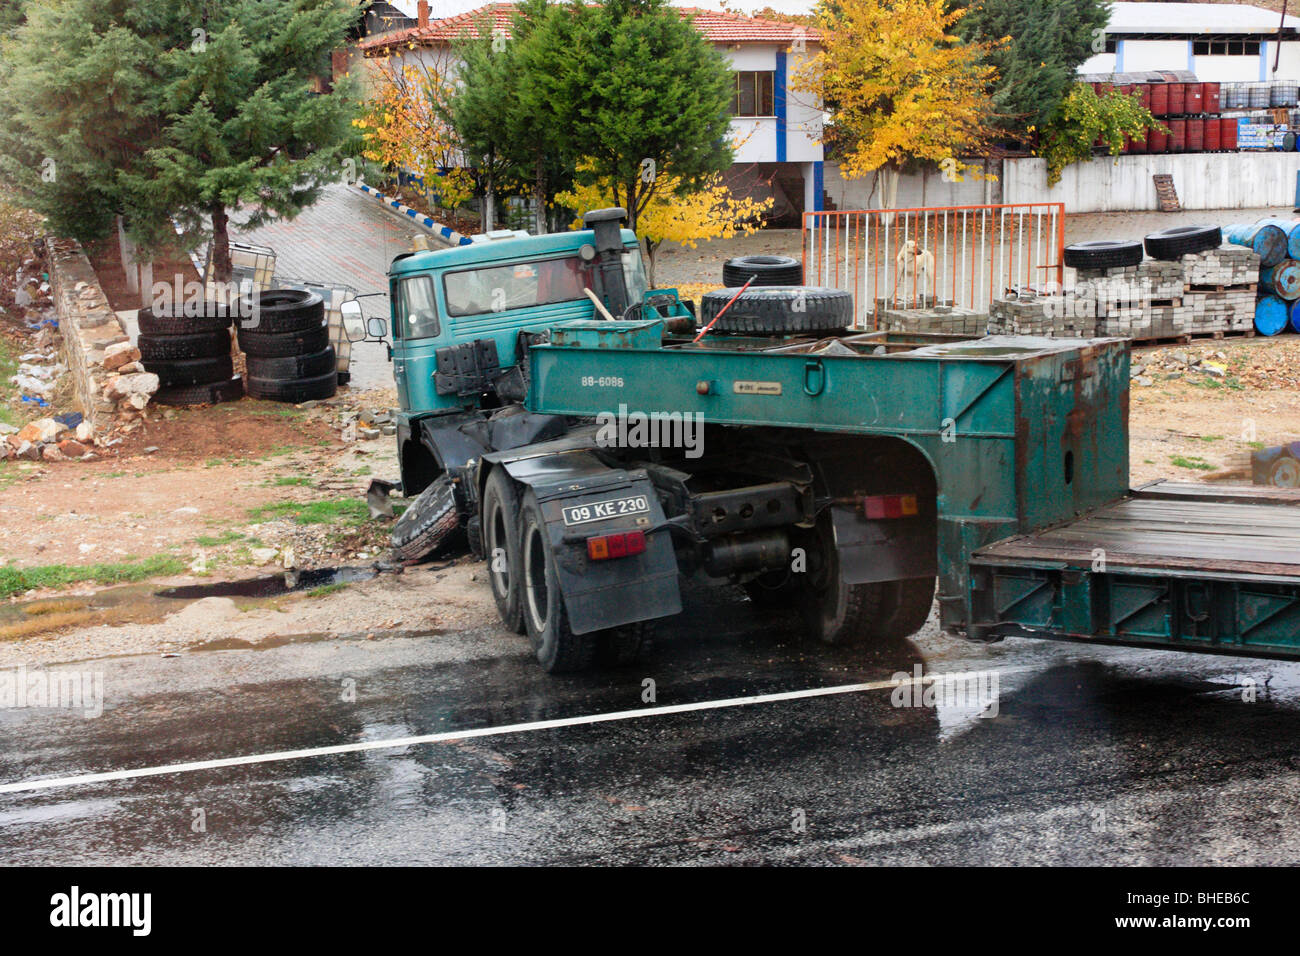 Traffic Accident Stock Photos & Traffic Accident Stock Images - Alamy